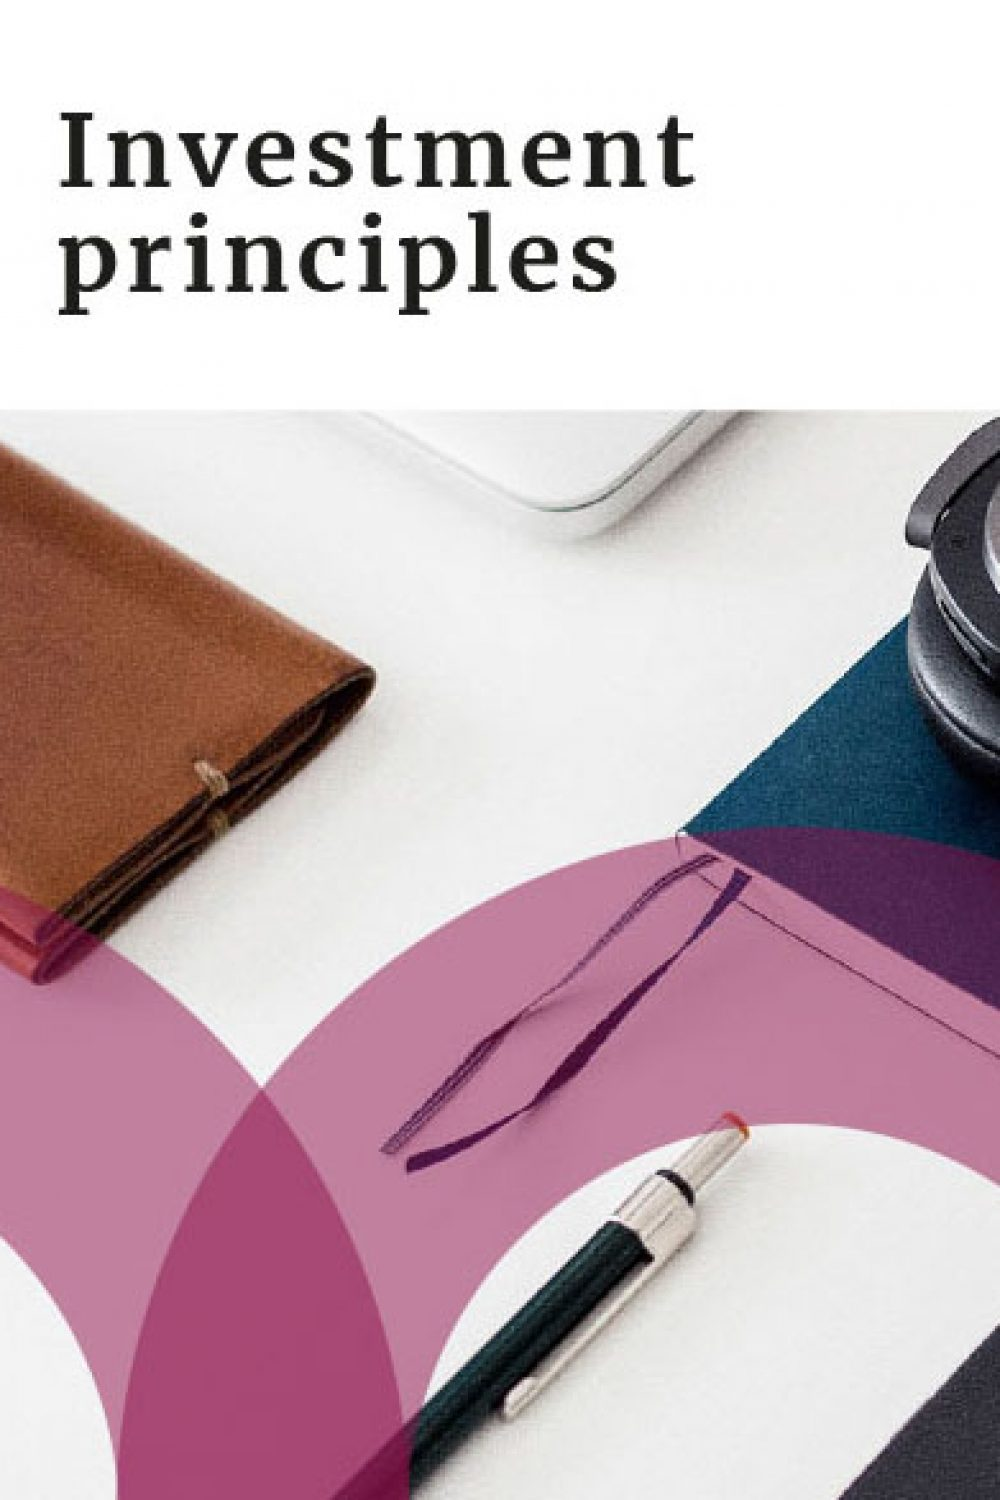 Our Investment Principles